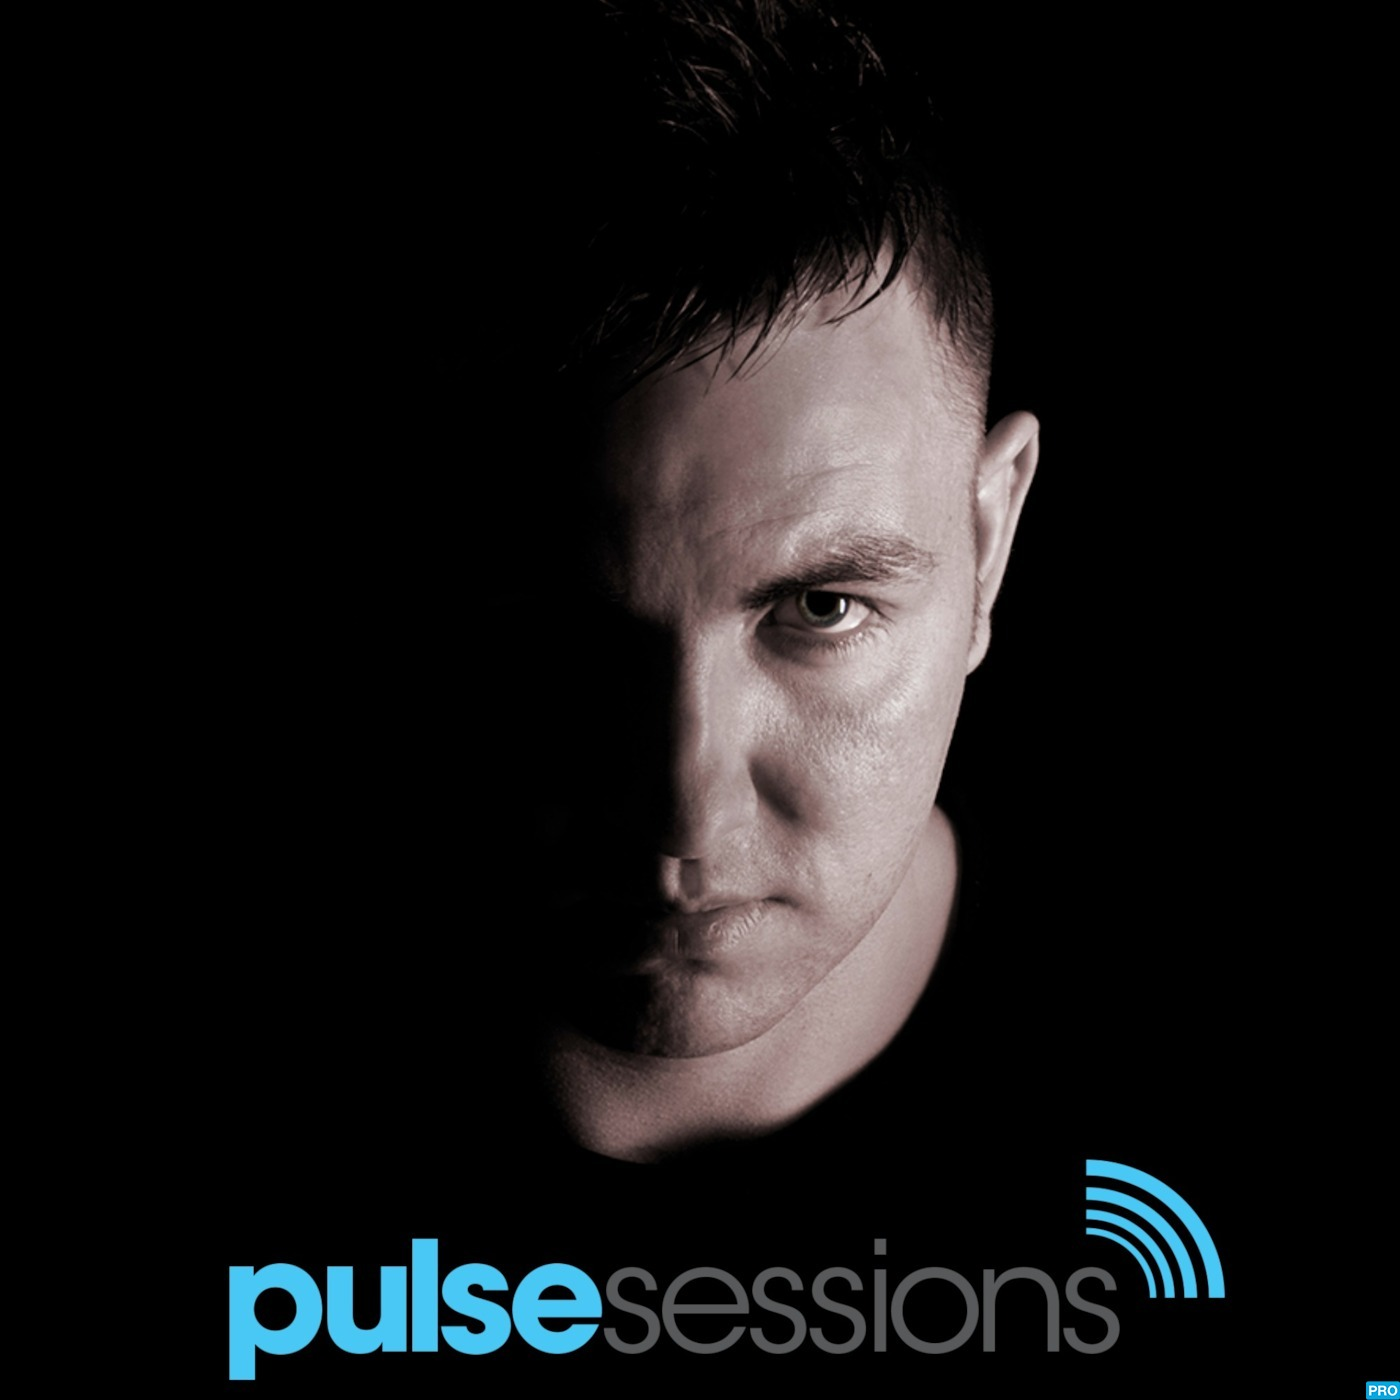 Pulse Sessions